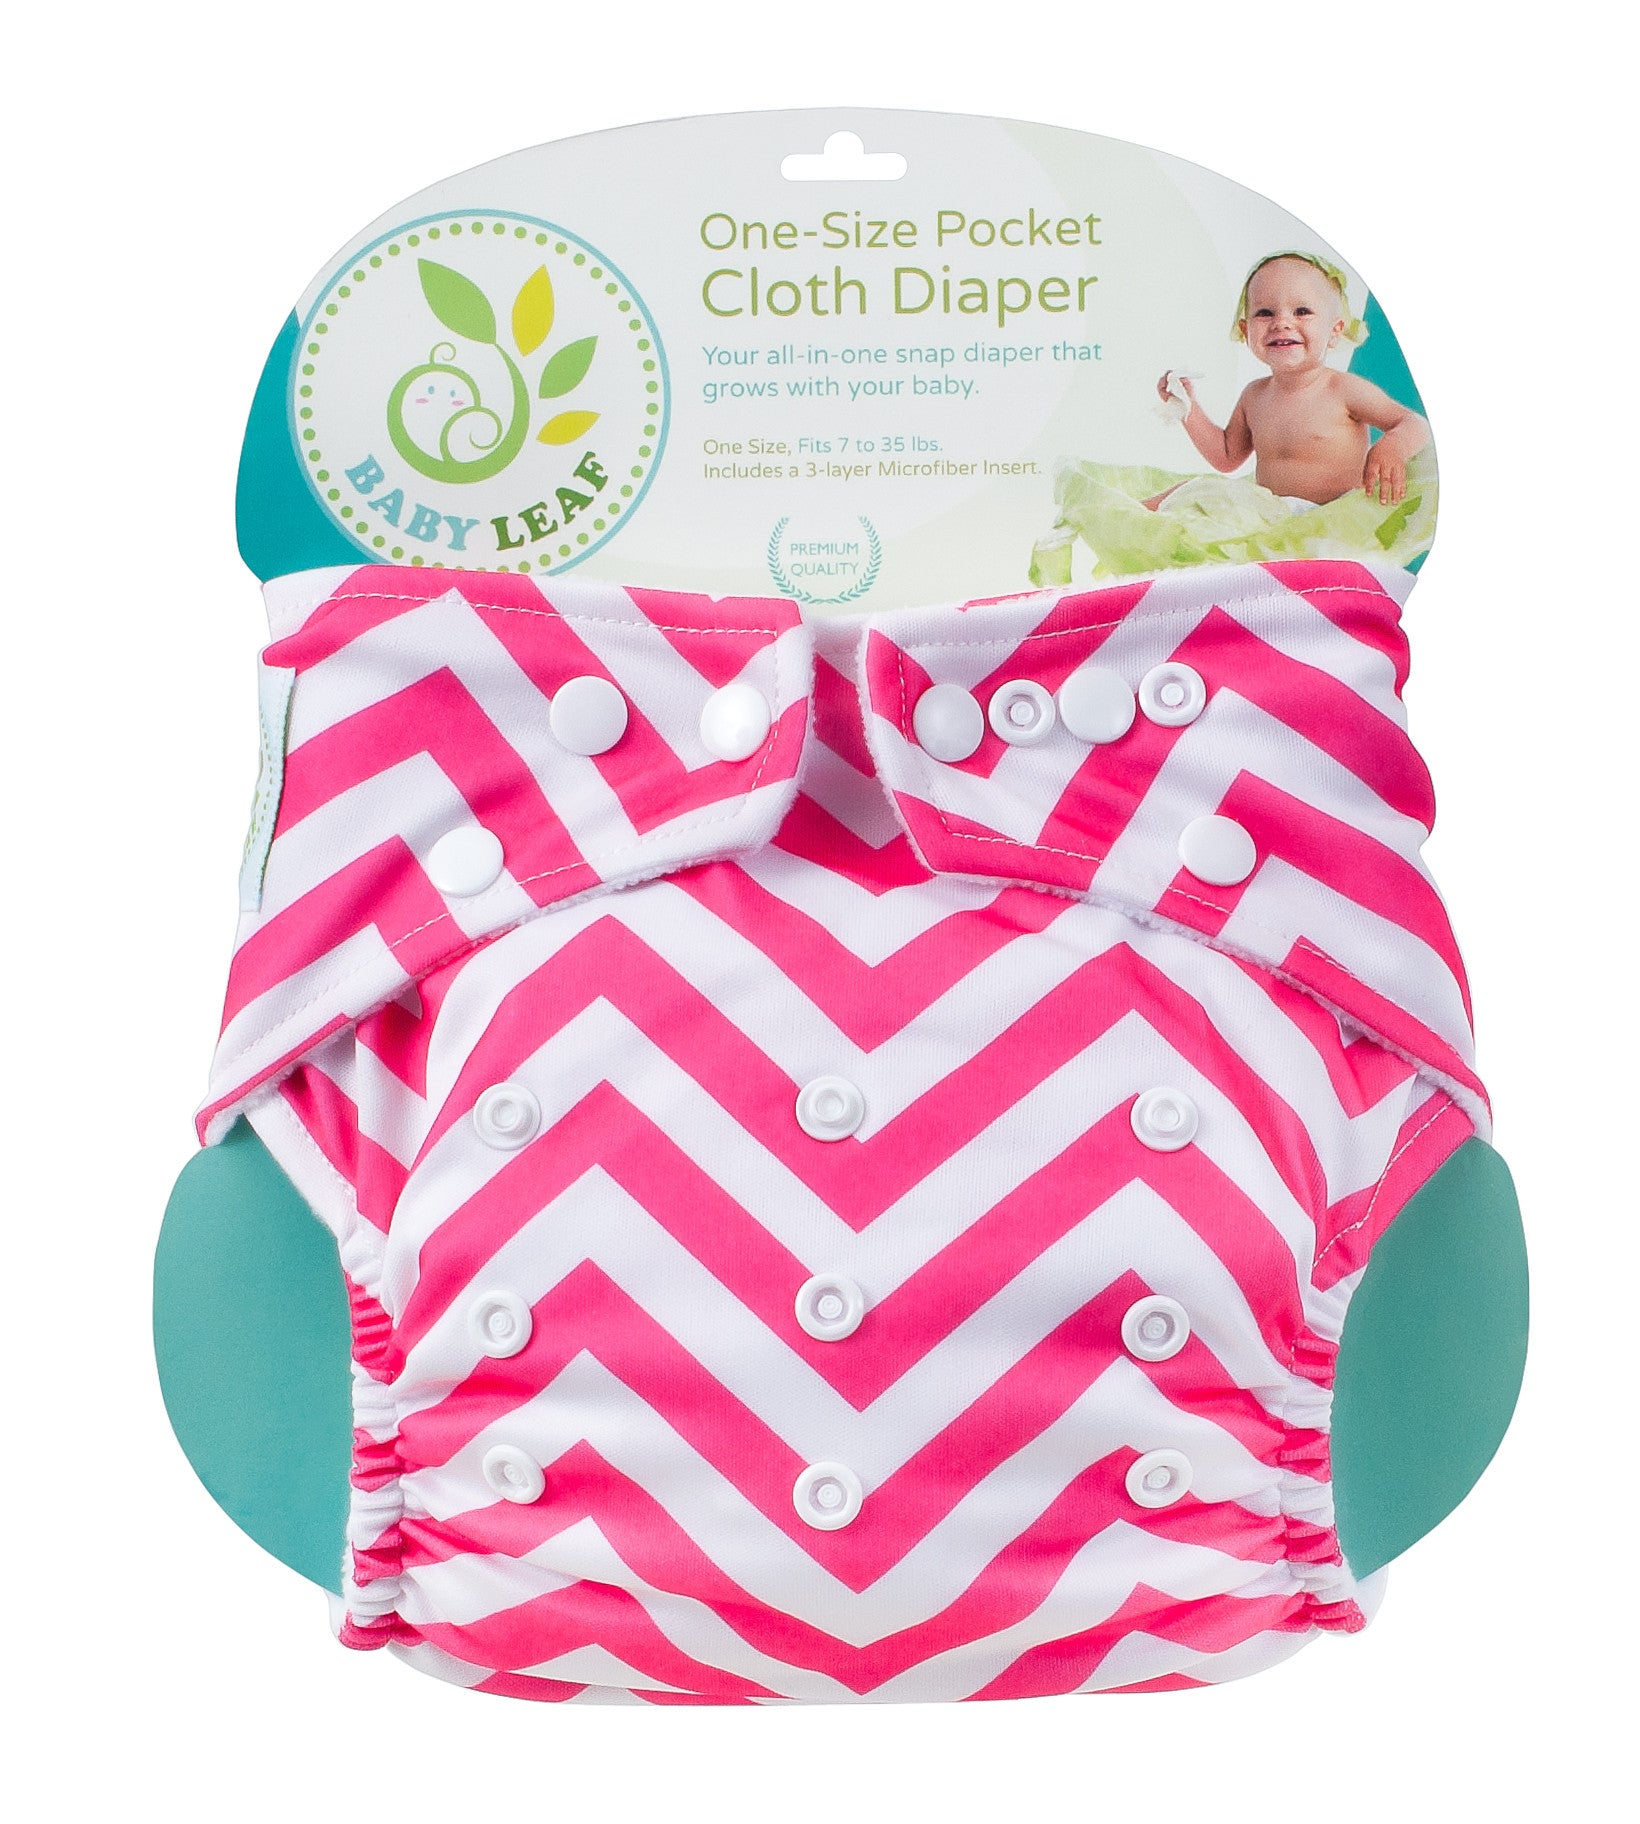 Baby Leaf Chevpink One-Size Cloth Diapers